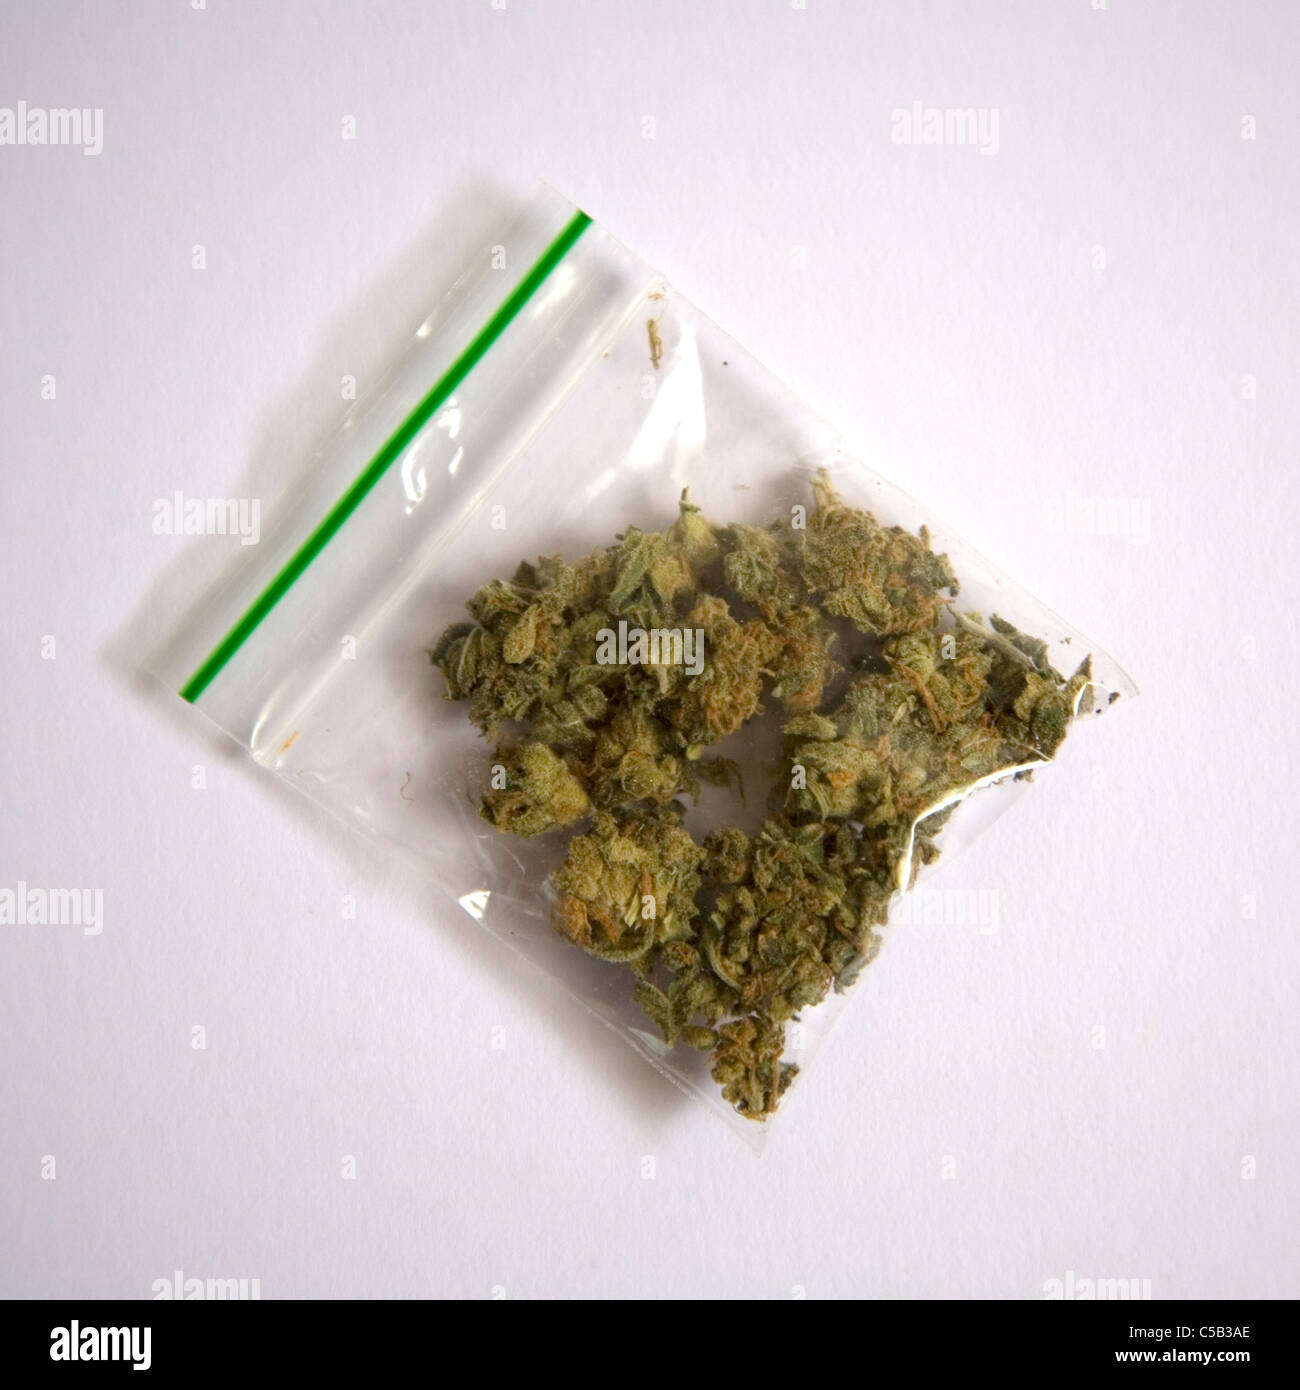 Eighth Of Weed: Weed Bag Stock Photos & Weed Bag Stock Images